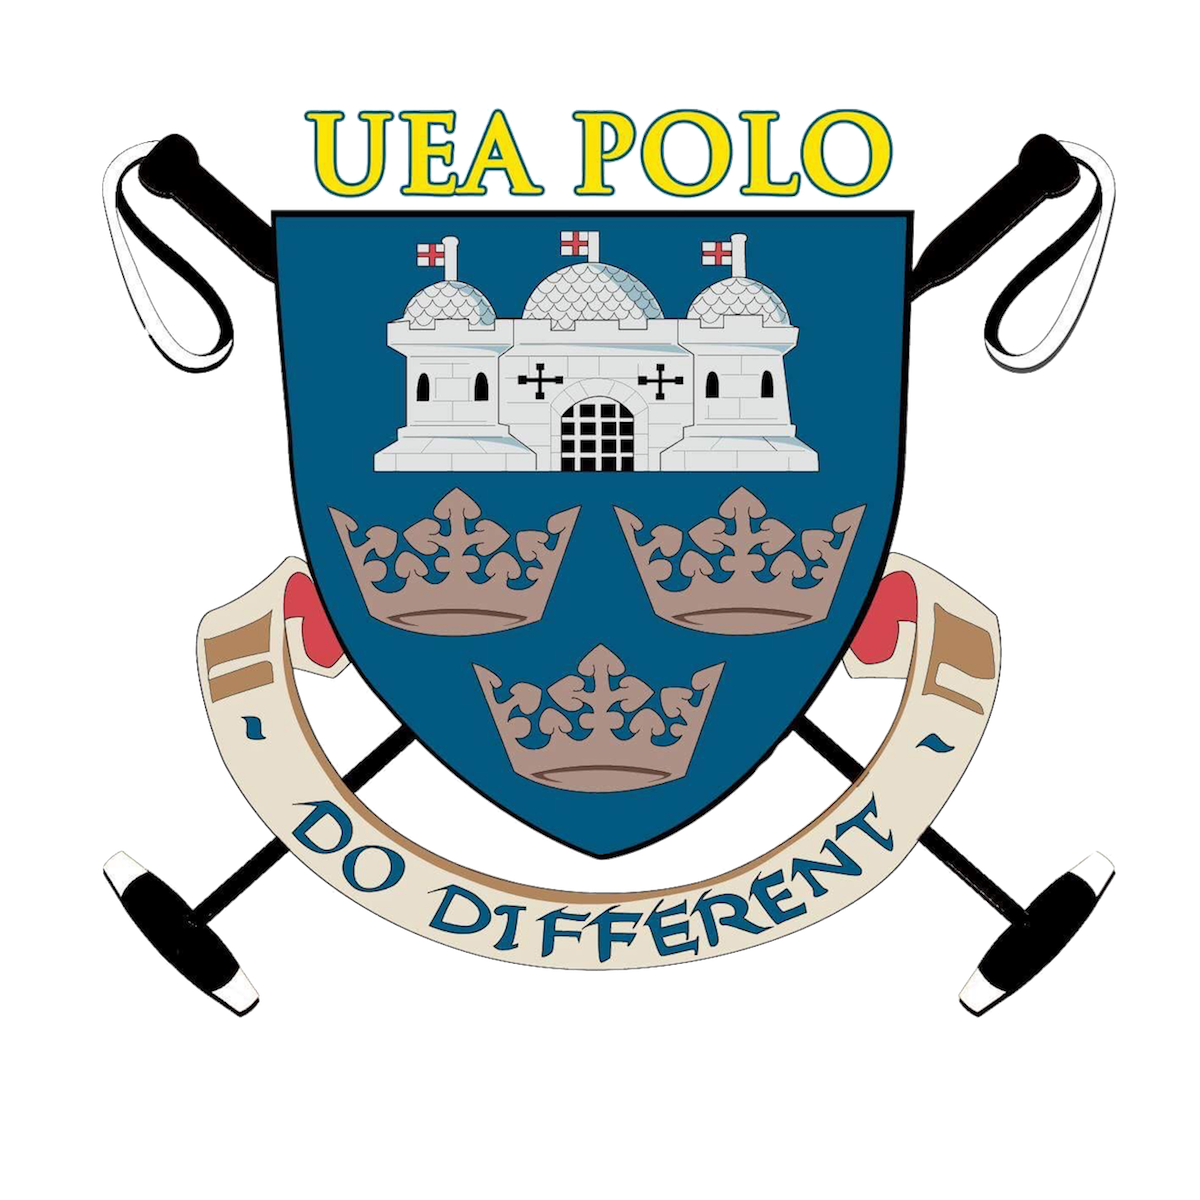 UEA Polo join us from the University of East Anglia bringing students to play.